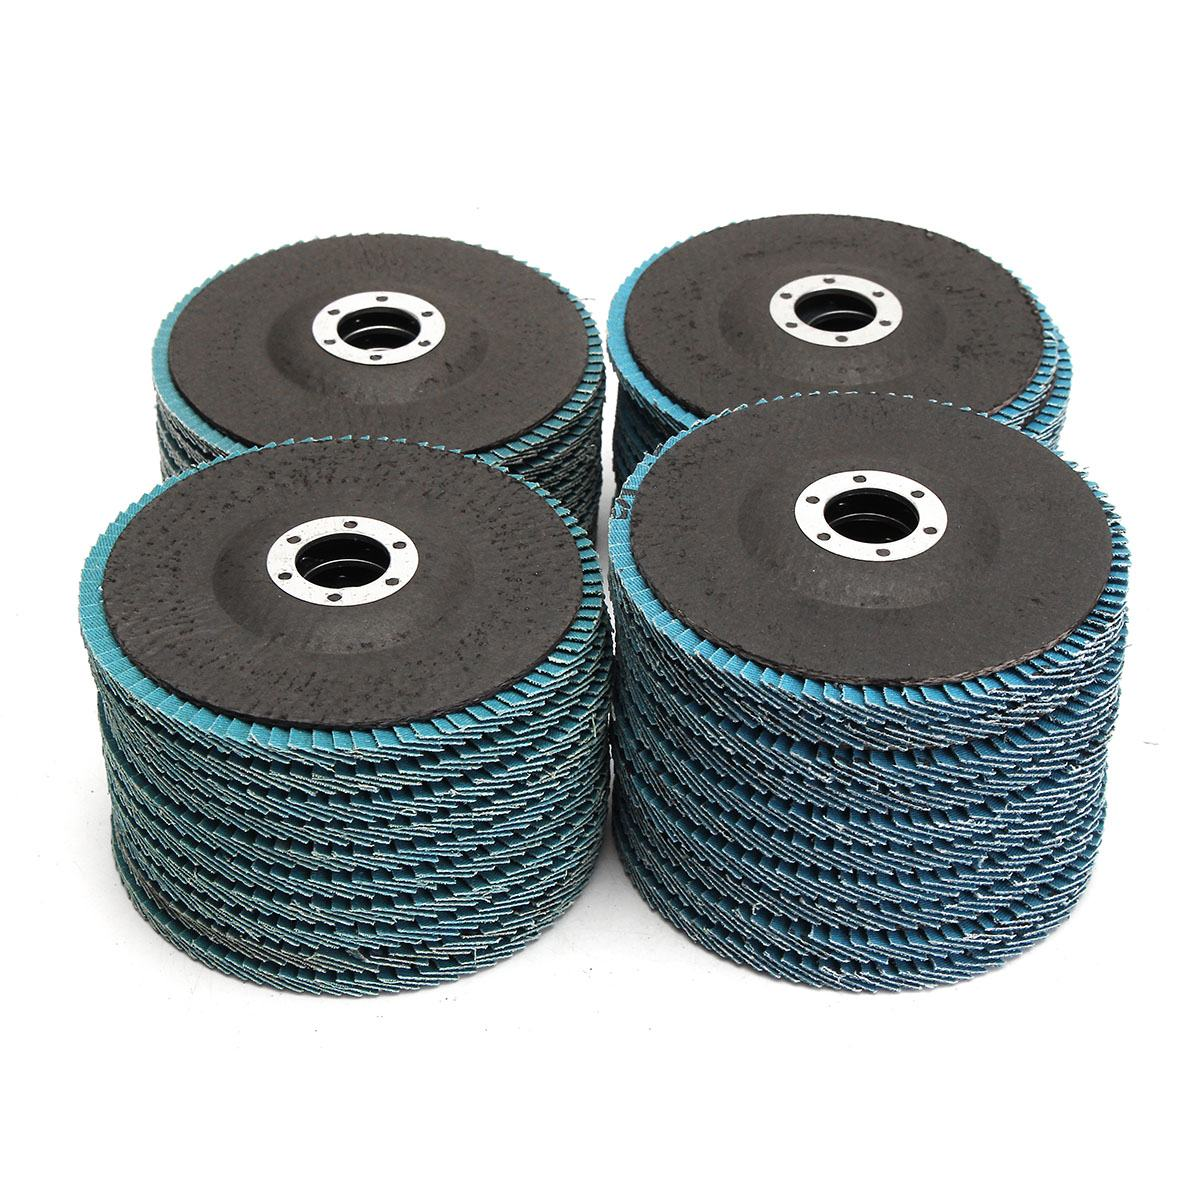 DRILLPRO 10pcs 13000rpm Angle Grinder Flap Disc 5 Inch 125mm Sanding Discs Grinding Wheel Blades 40/60/80/120 Grit Abrasive Tool